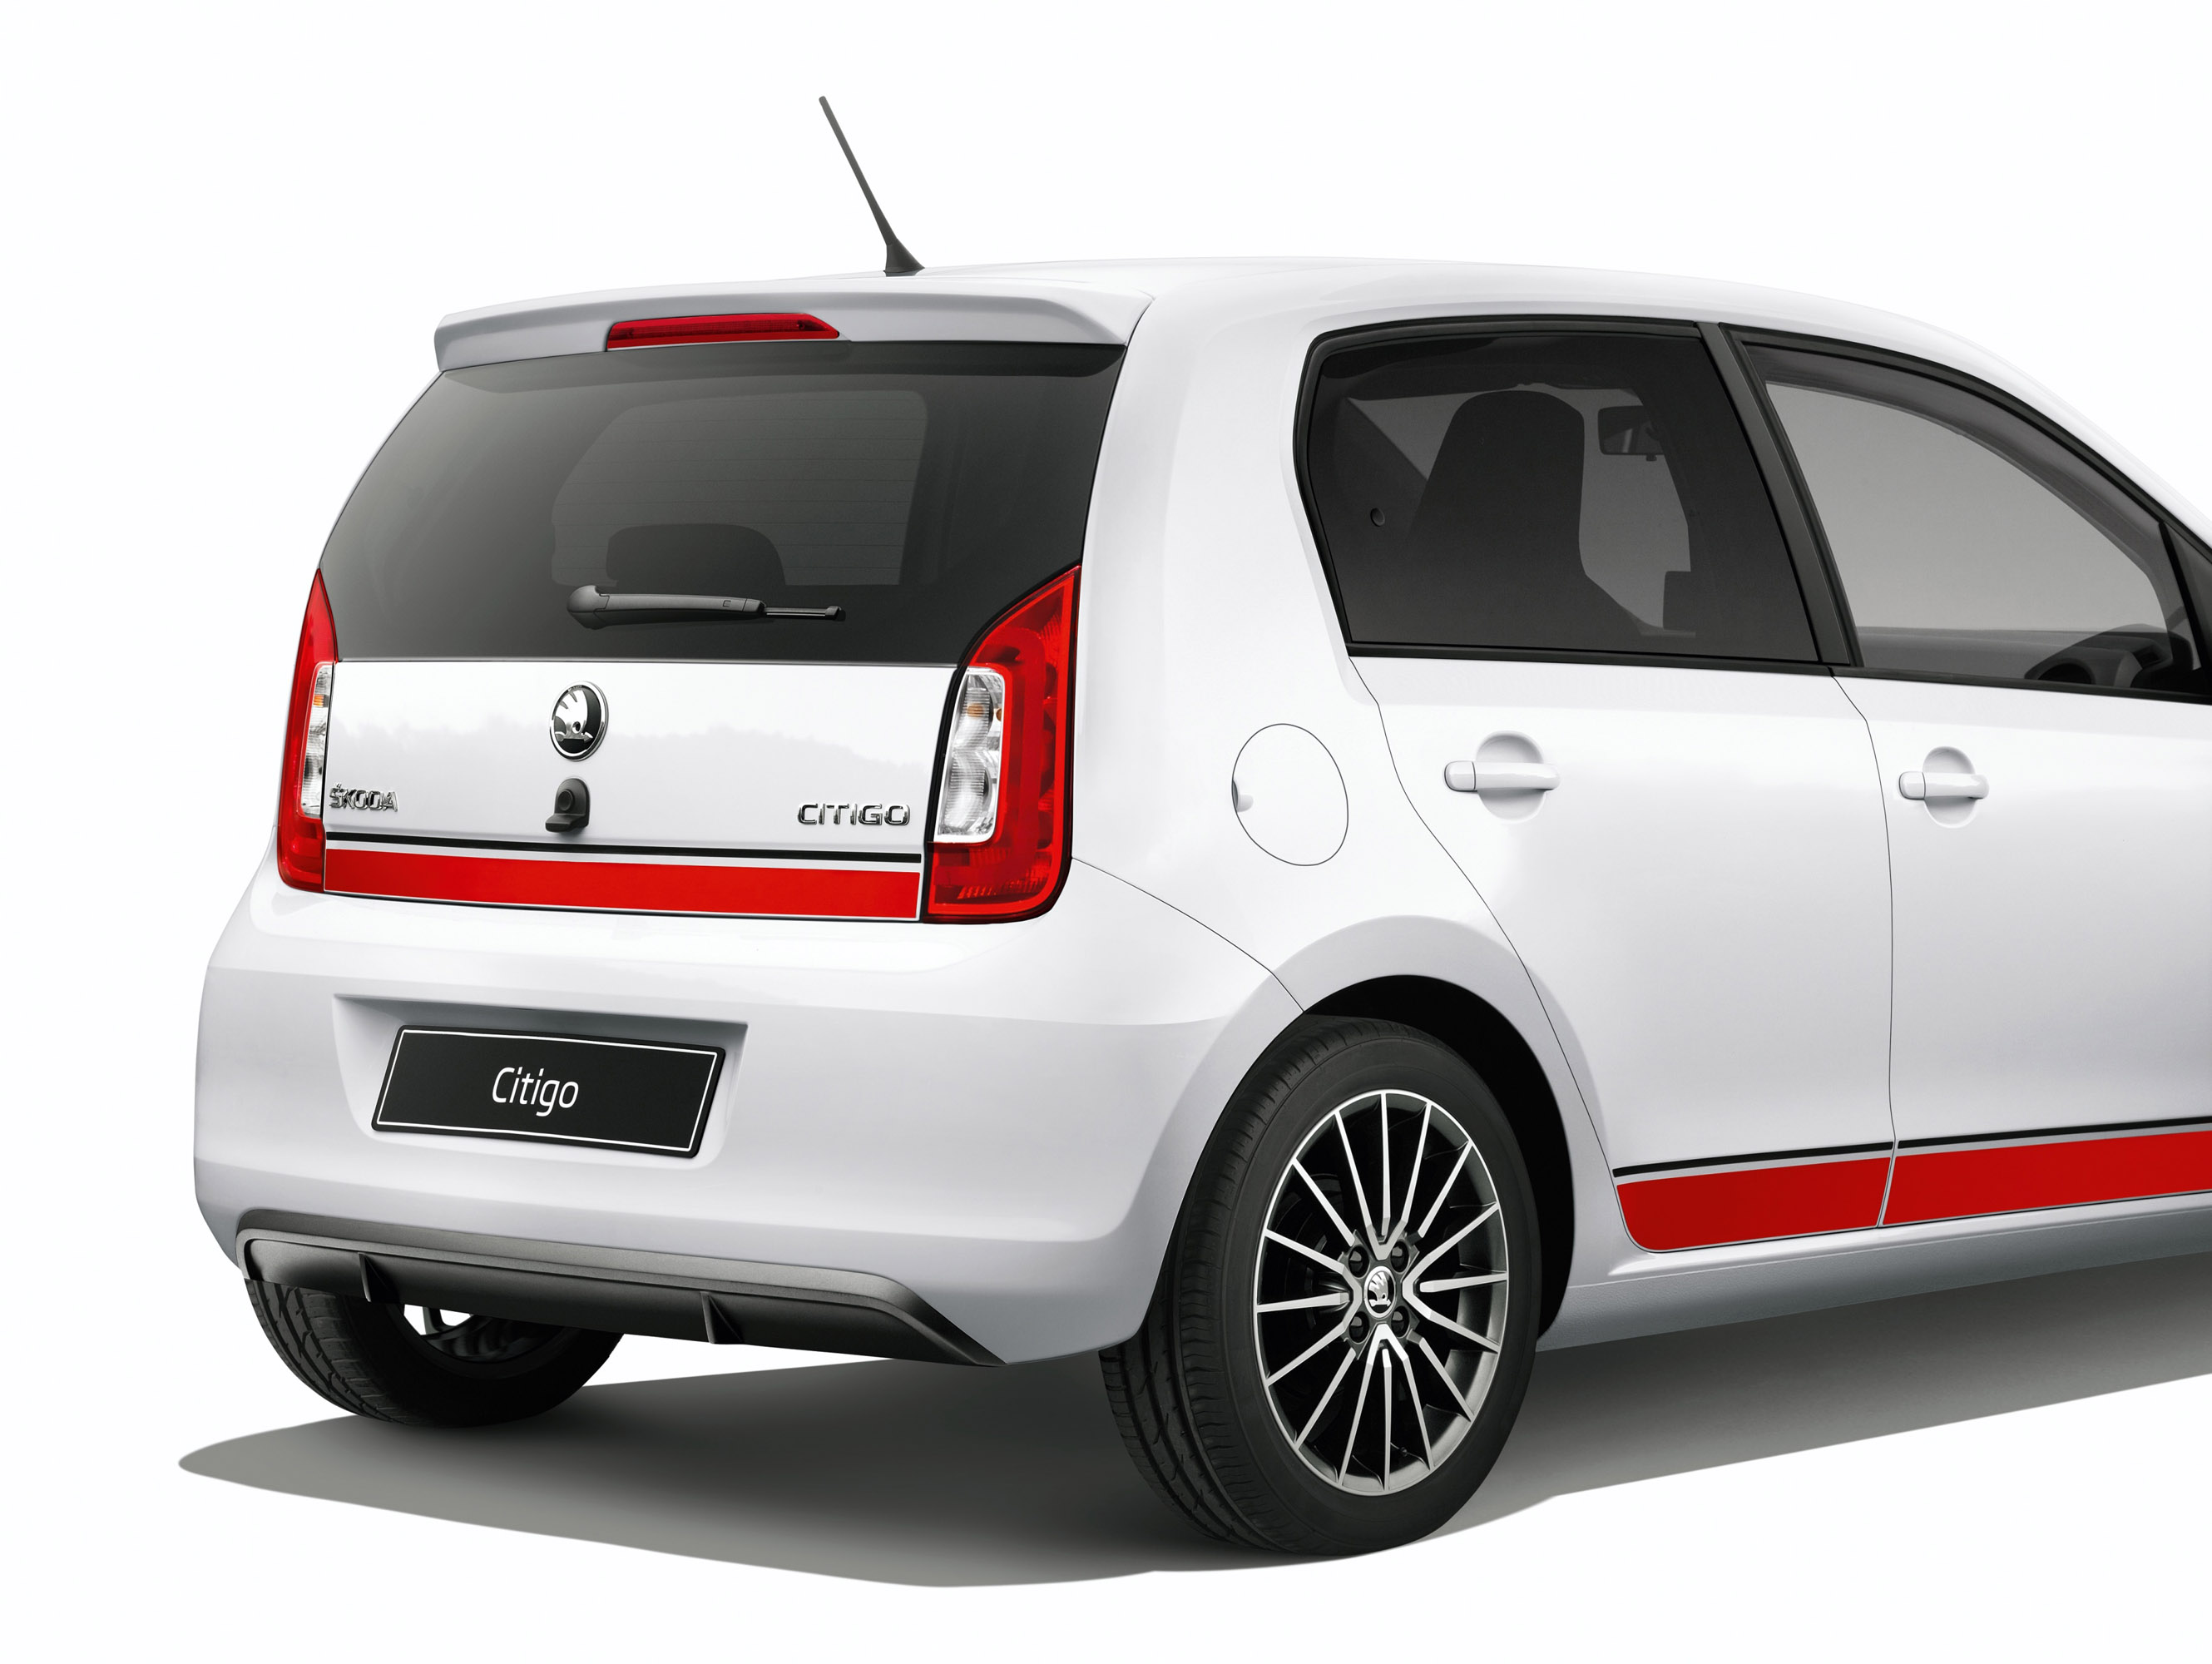 2013 Skoda Citigo Sport Racing Chic